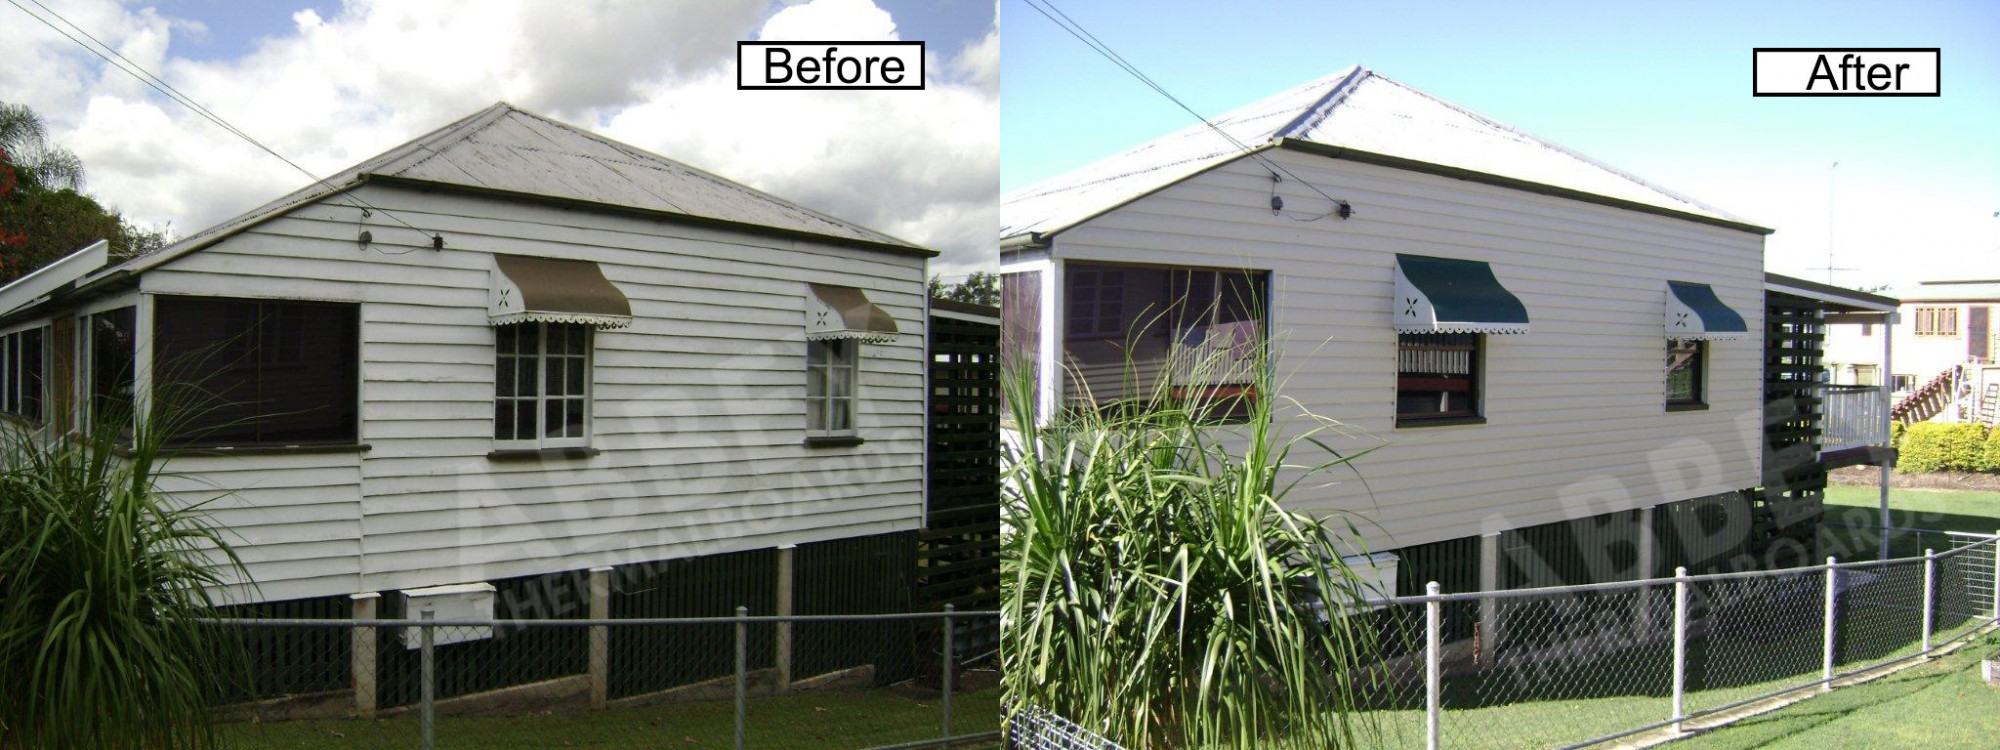 The side back view before and after shots of a home with new vinyl cladding.